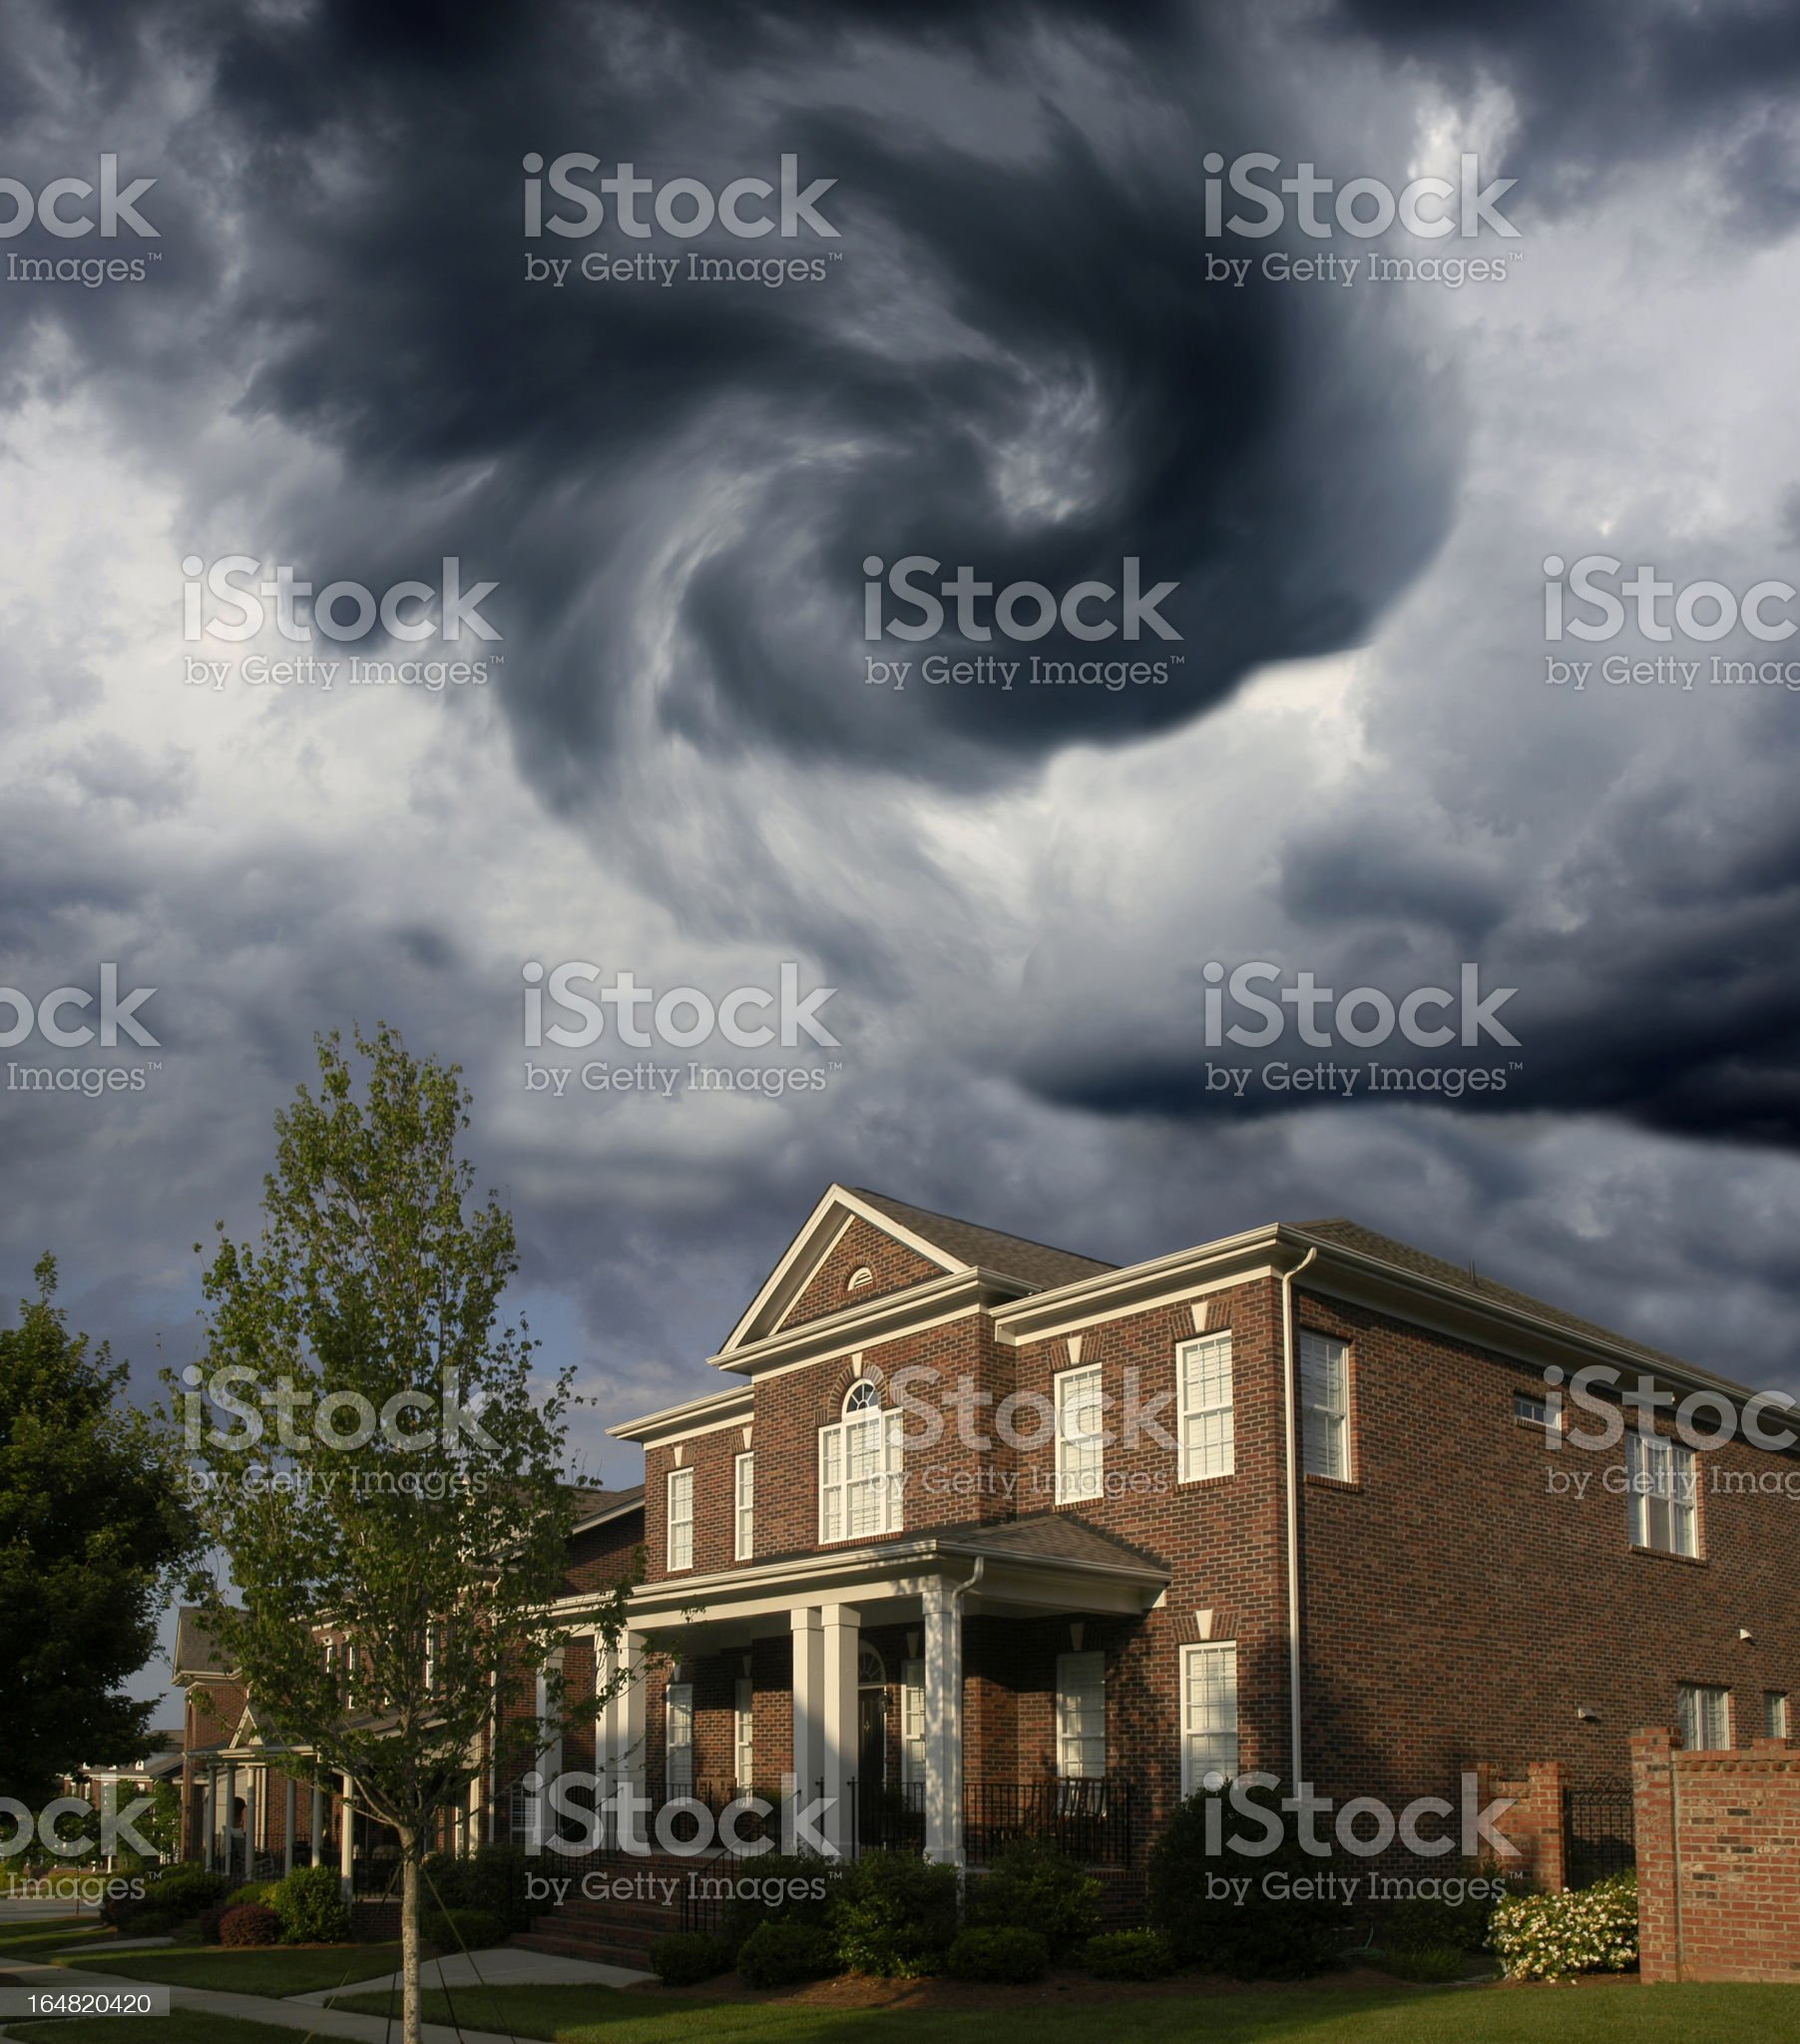 Funnel Cloud Over a Row of Brick Homes royalty-free stock photo